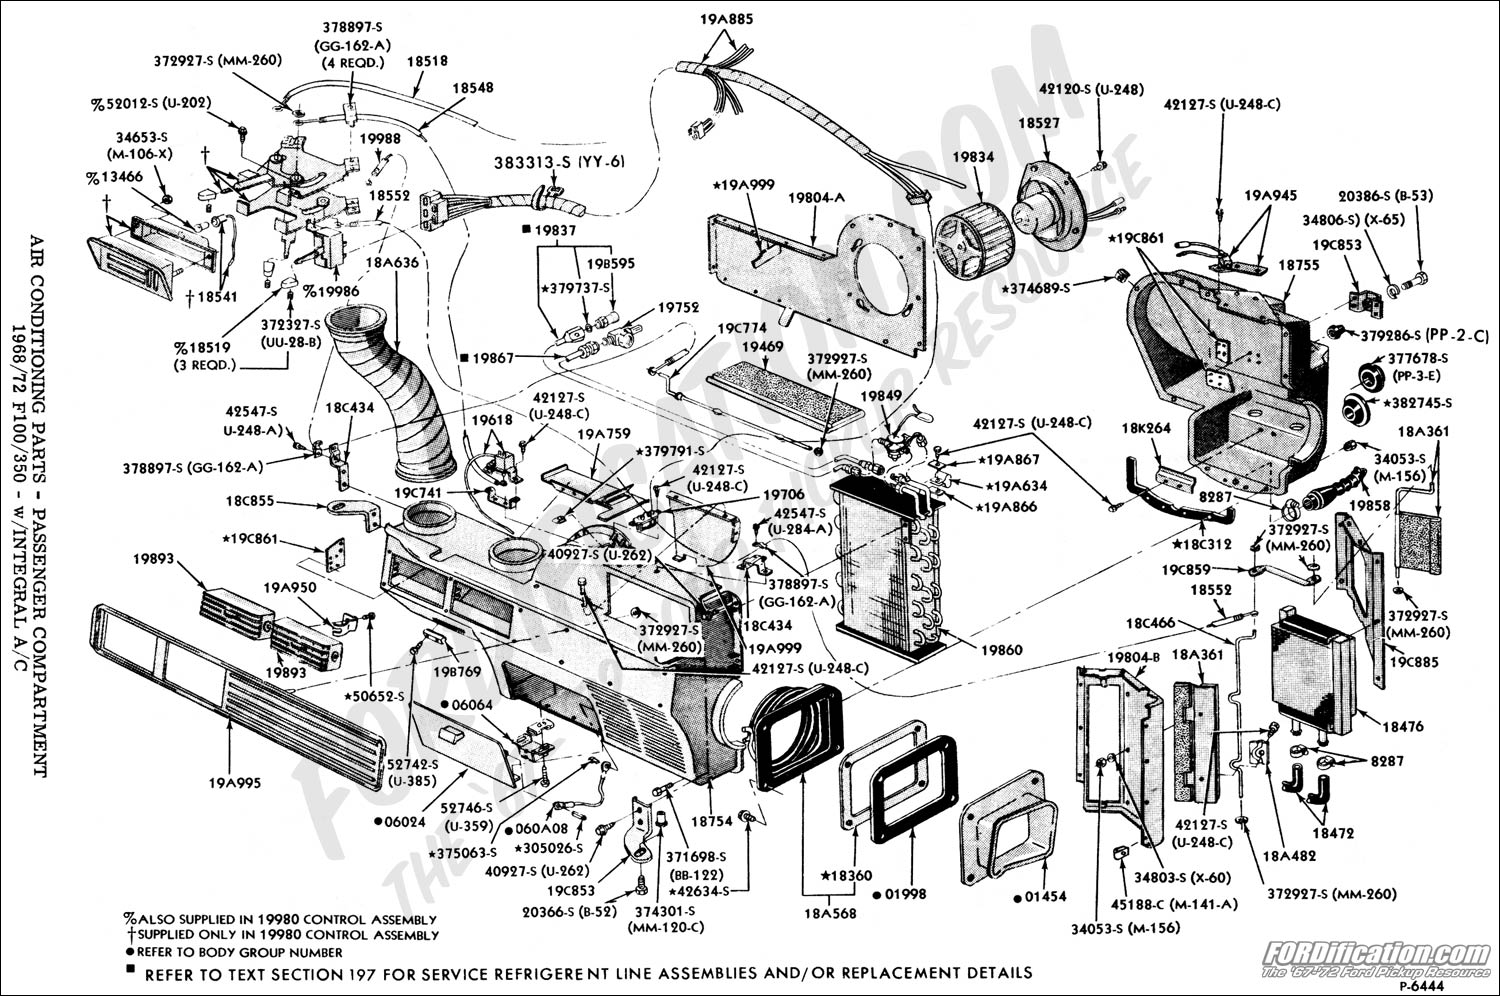 97 f150 parts diagram  97  get free image about wiring diagram